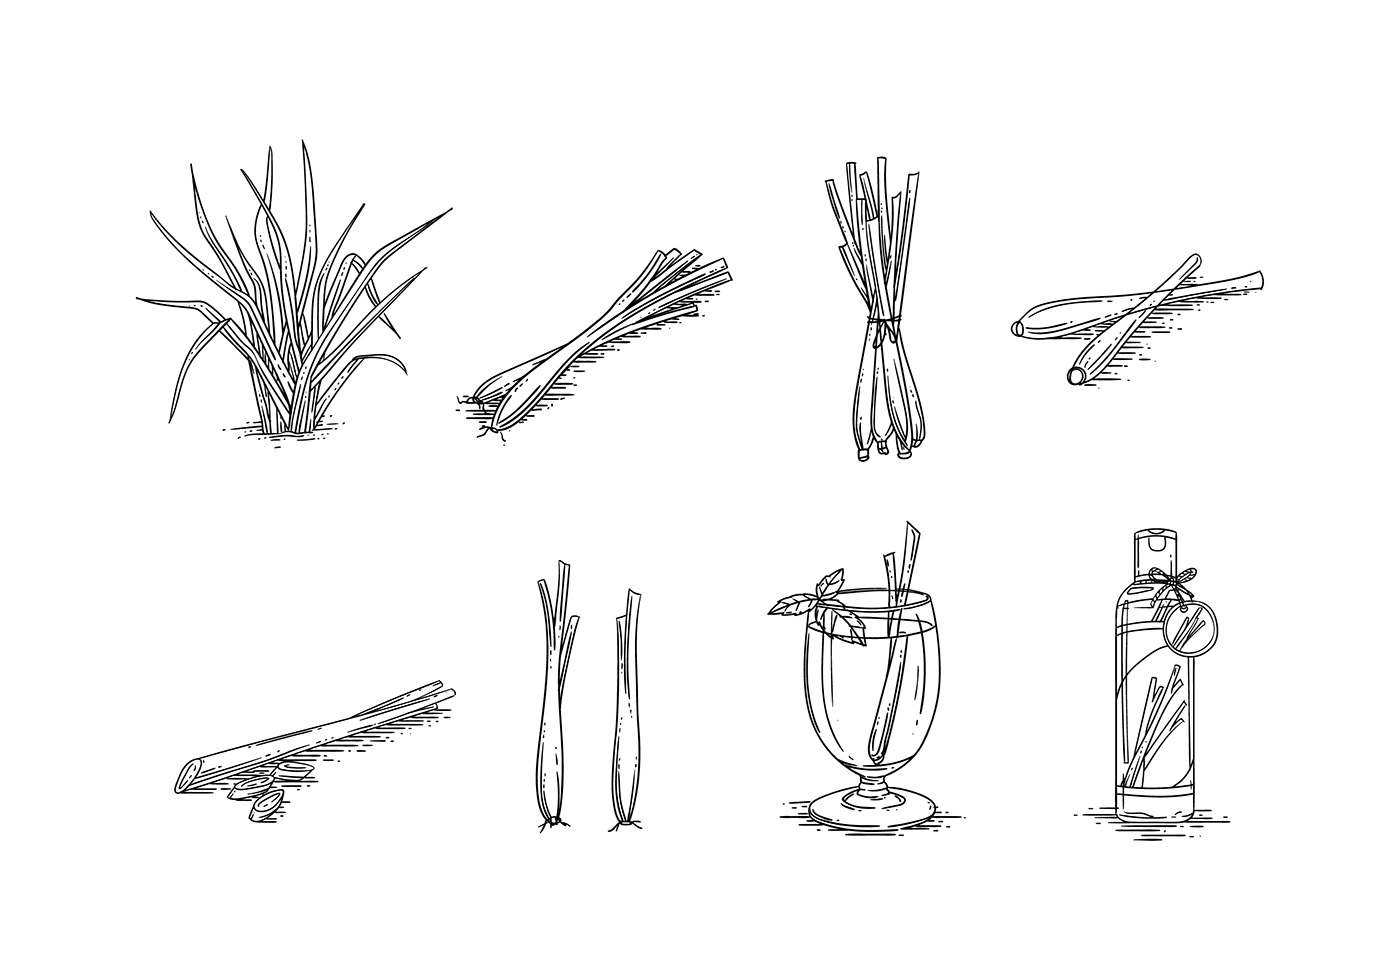 Lemongrass sketch vector free download free vector art for Sketch online free